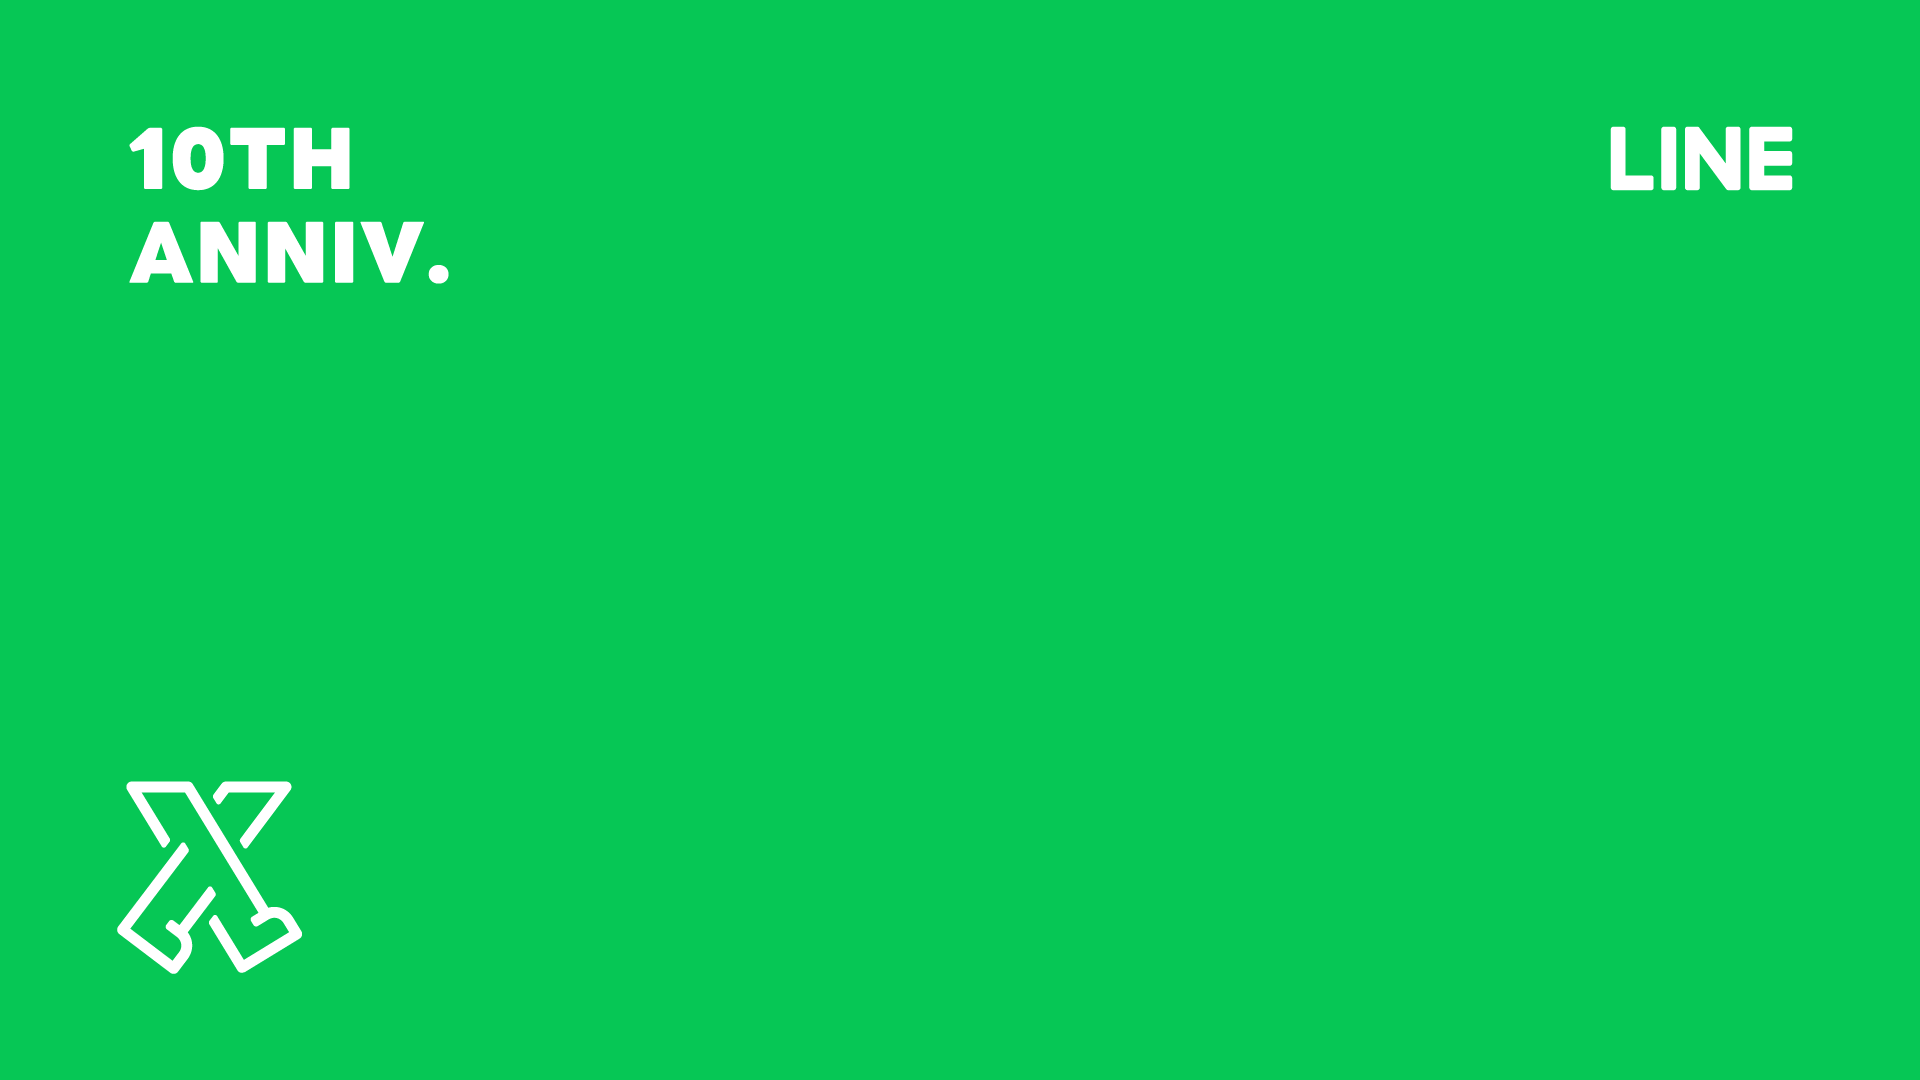 A_green.png